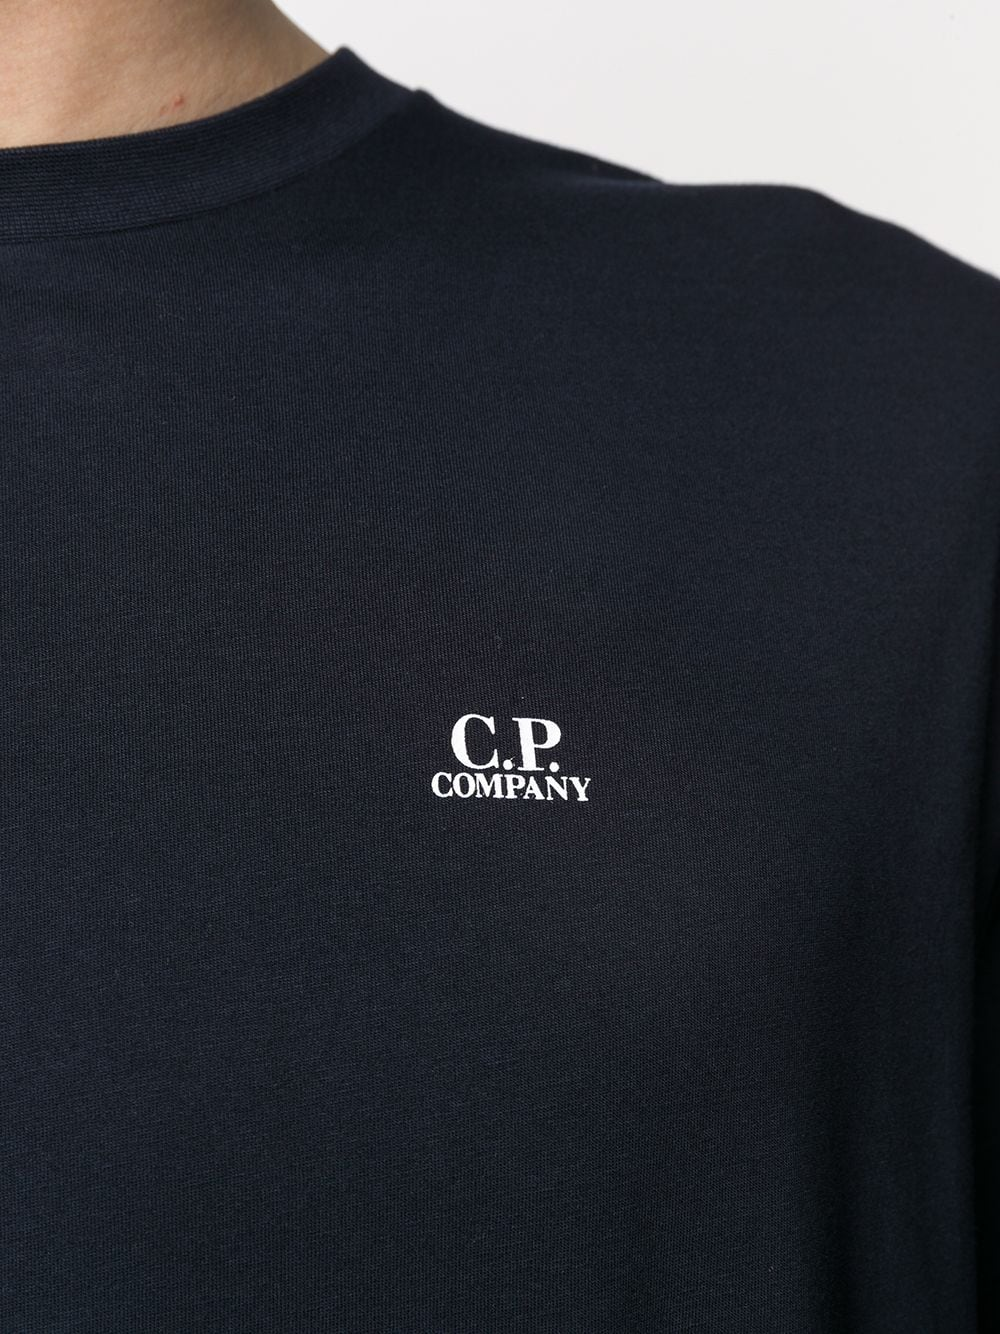 Picture of C.P. Company | T-Shirt